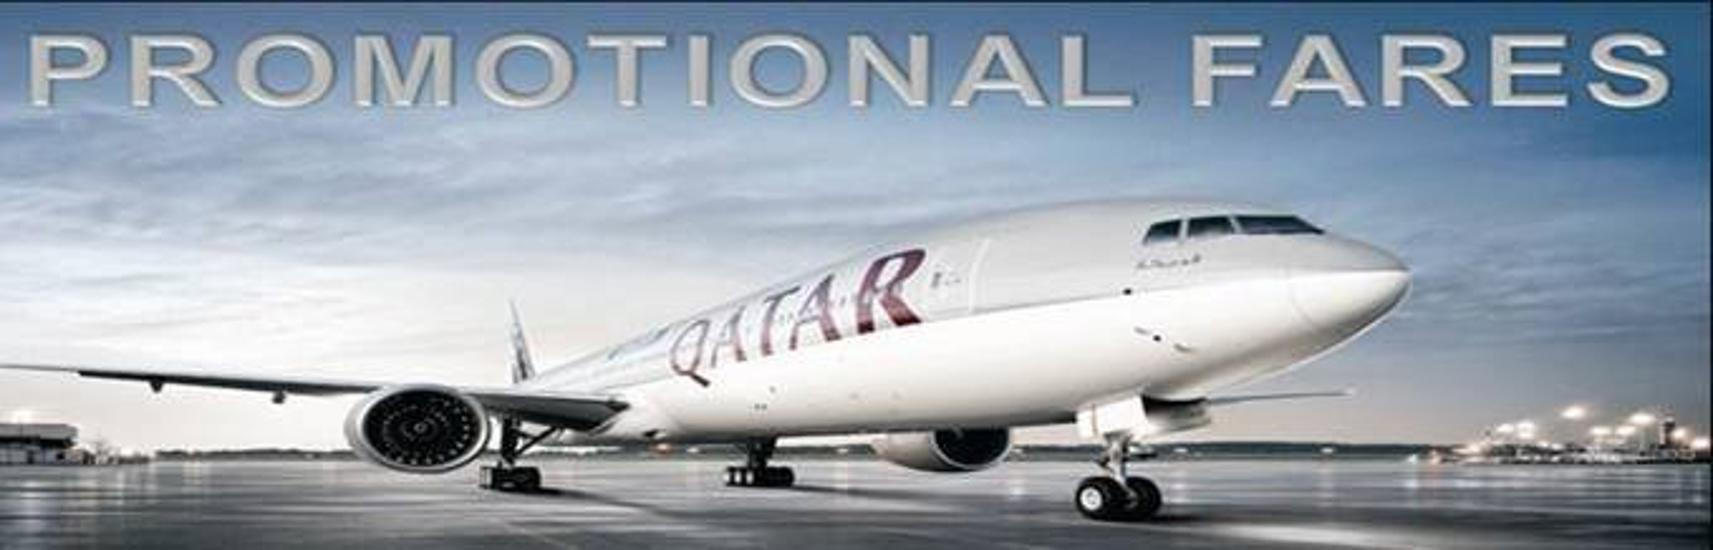 Fantastic Spring Promotion From Qatar Airways In Hungary